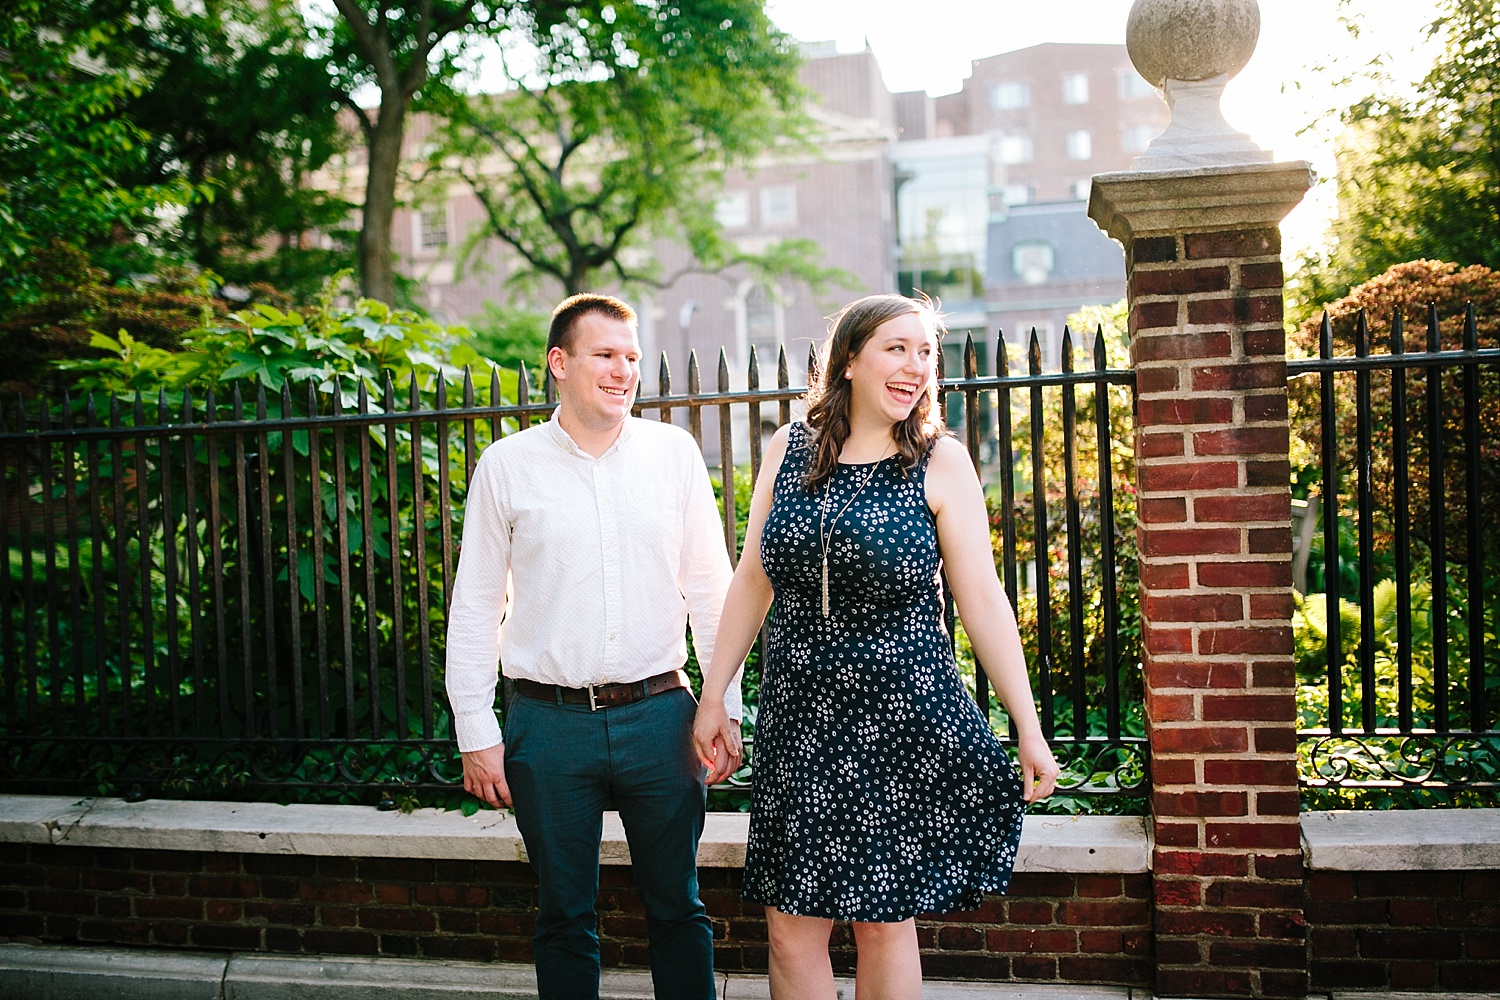 lizandbrandon_oldcity_philadelphia_elfrethsalley_engagement_session_image015.jpg